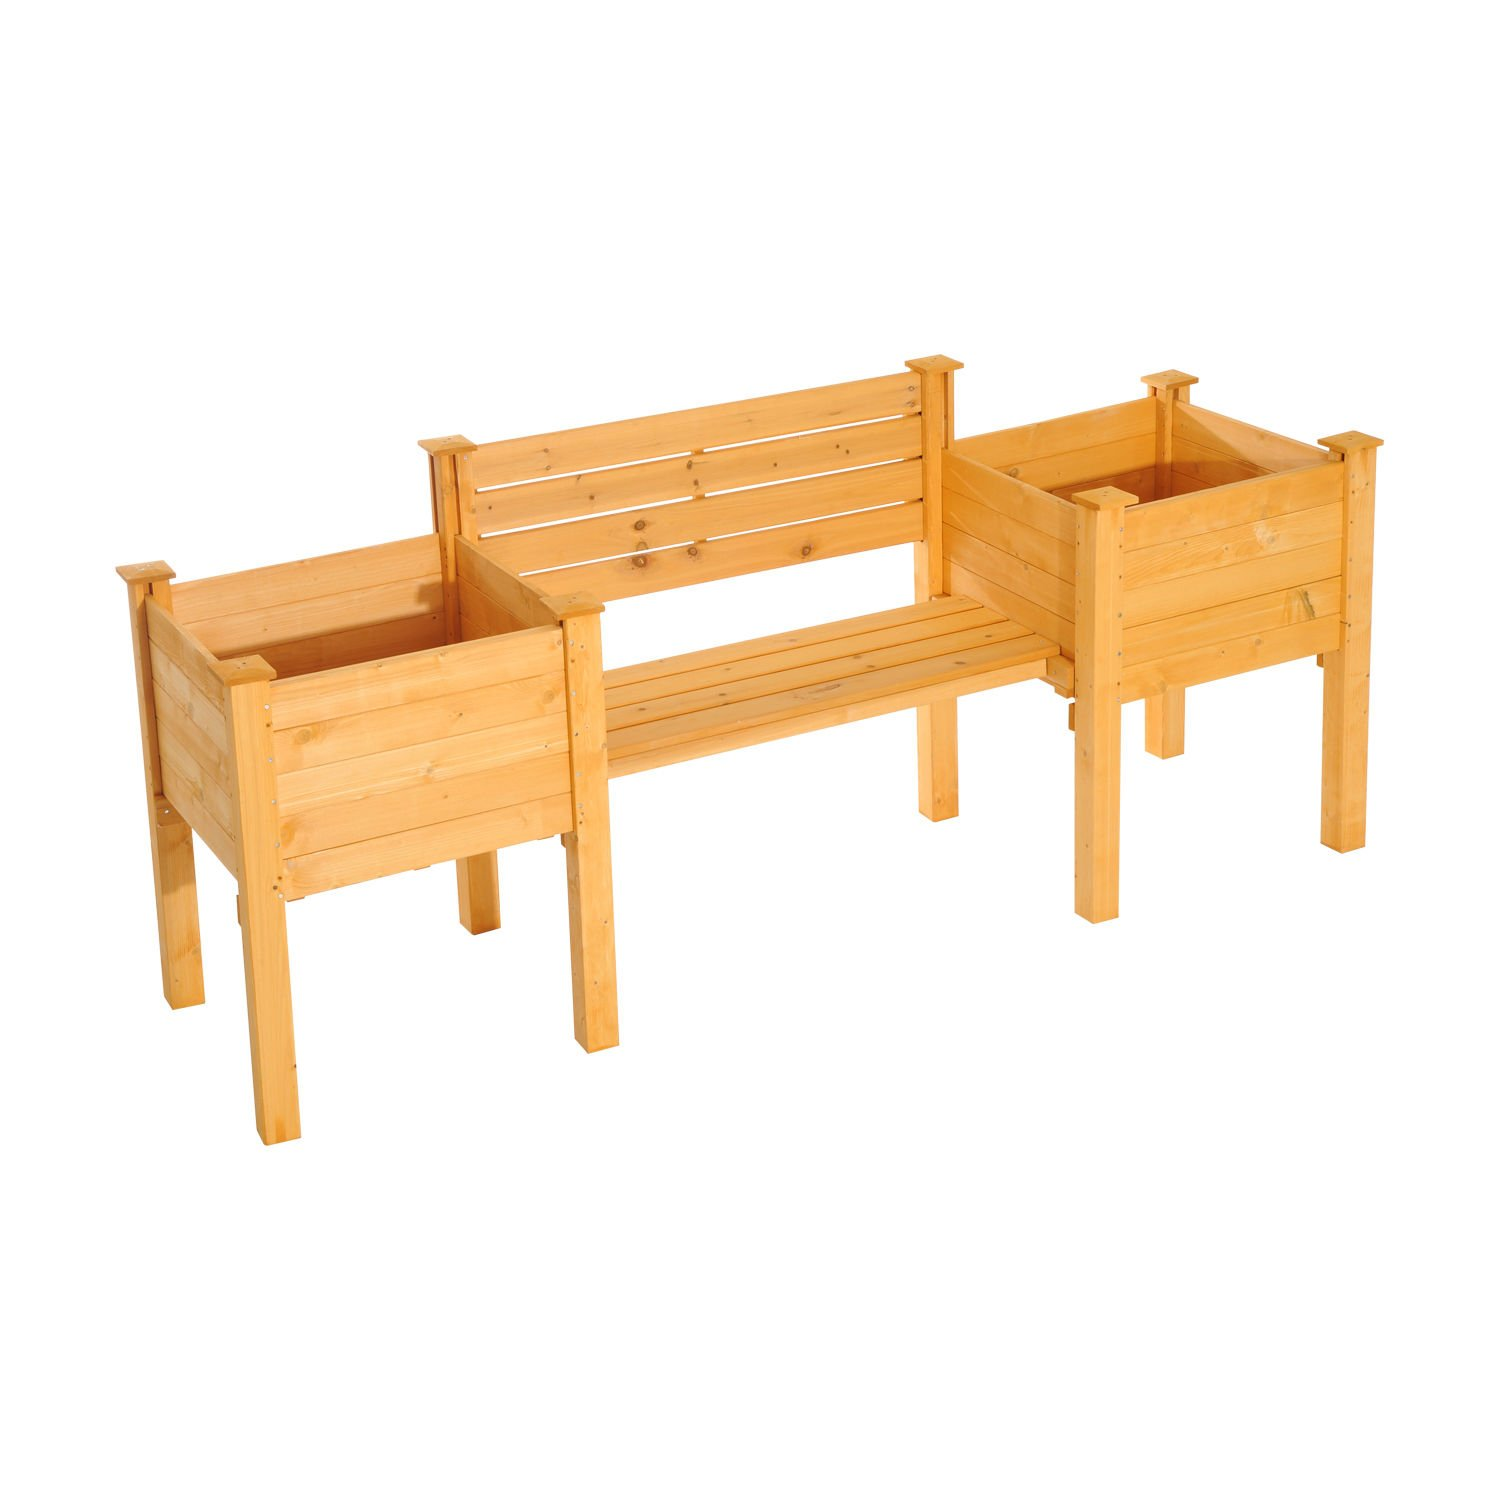 NEW Yellow Fir wood Wooden Garden Bench W/ Flower Bed Planter Patio Outdoor Furniture by Baskets, Pots & Window Boxes